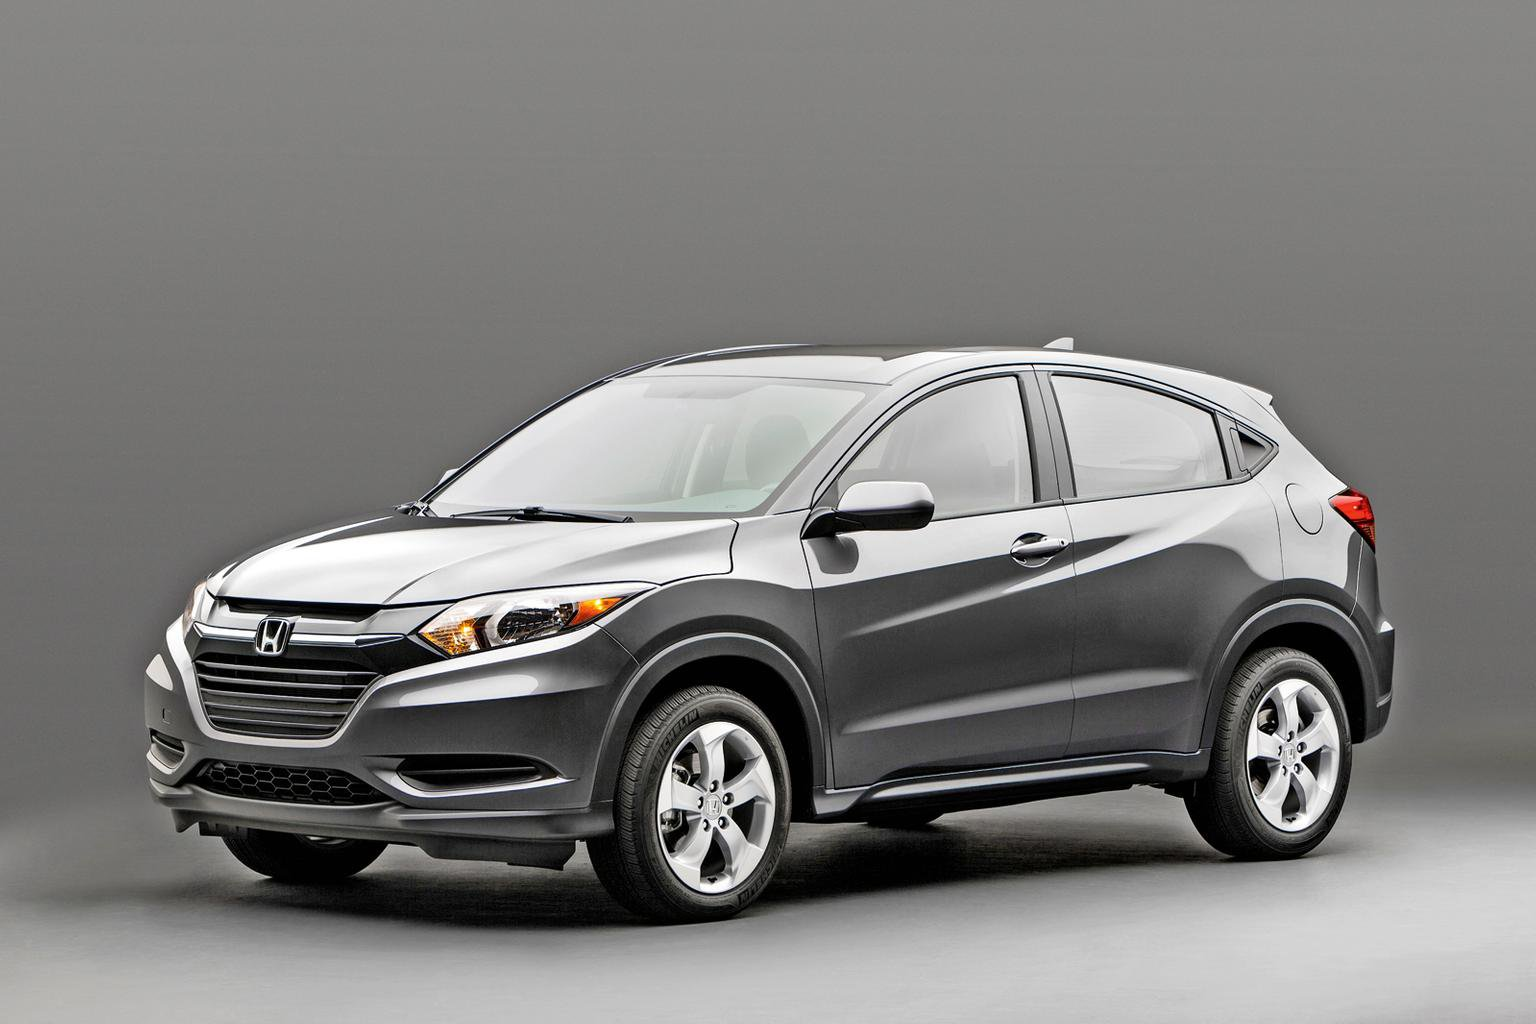 Honda HR-V wins the 2015 What Car? Reader Award